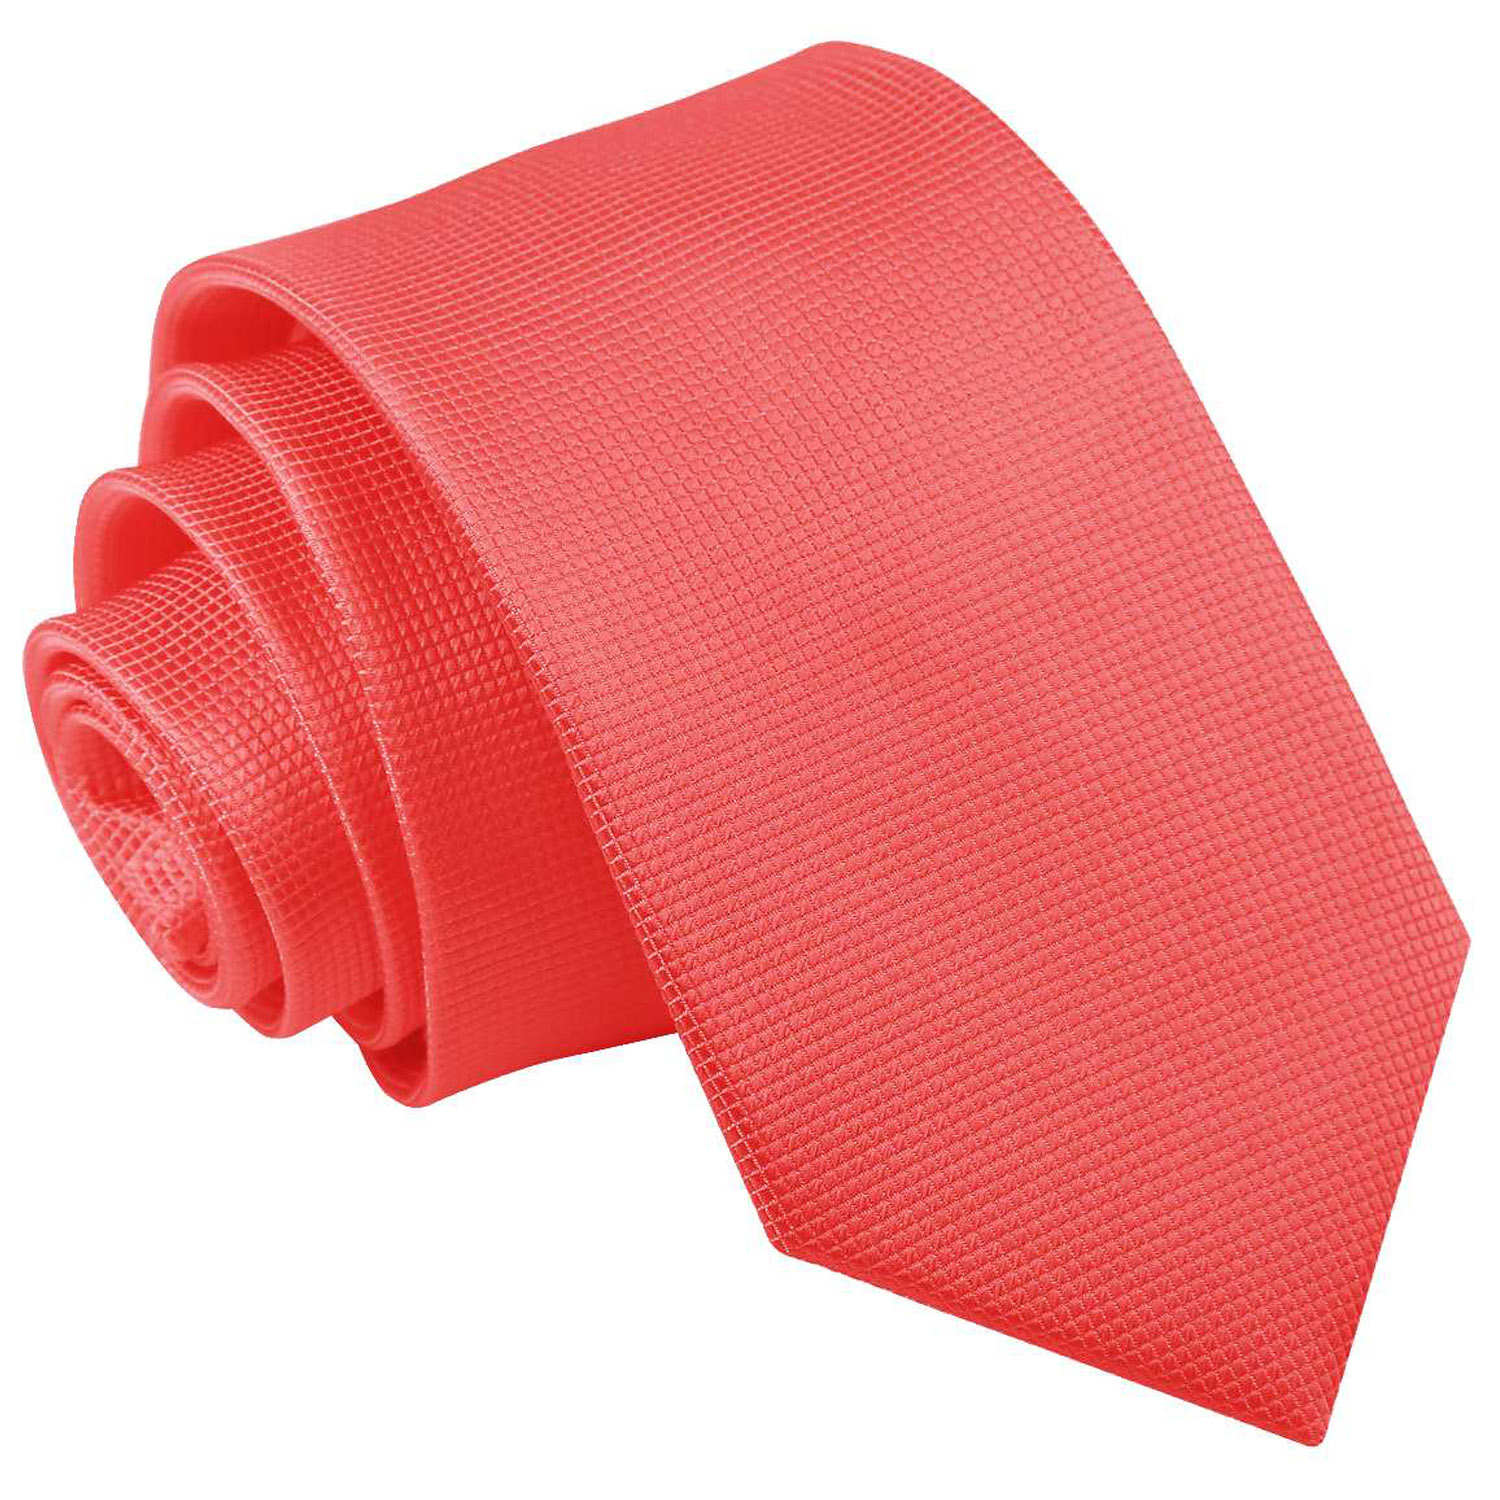 You searched for: mens coral ties! Etsy is the home to thousands of handmade, vintage, and one-of-a-kind products and gifts related to your search. No matter what you're looking for or where you are in the world, our global marketplace of sellers can help you find unique and affordable options. Let's get started!